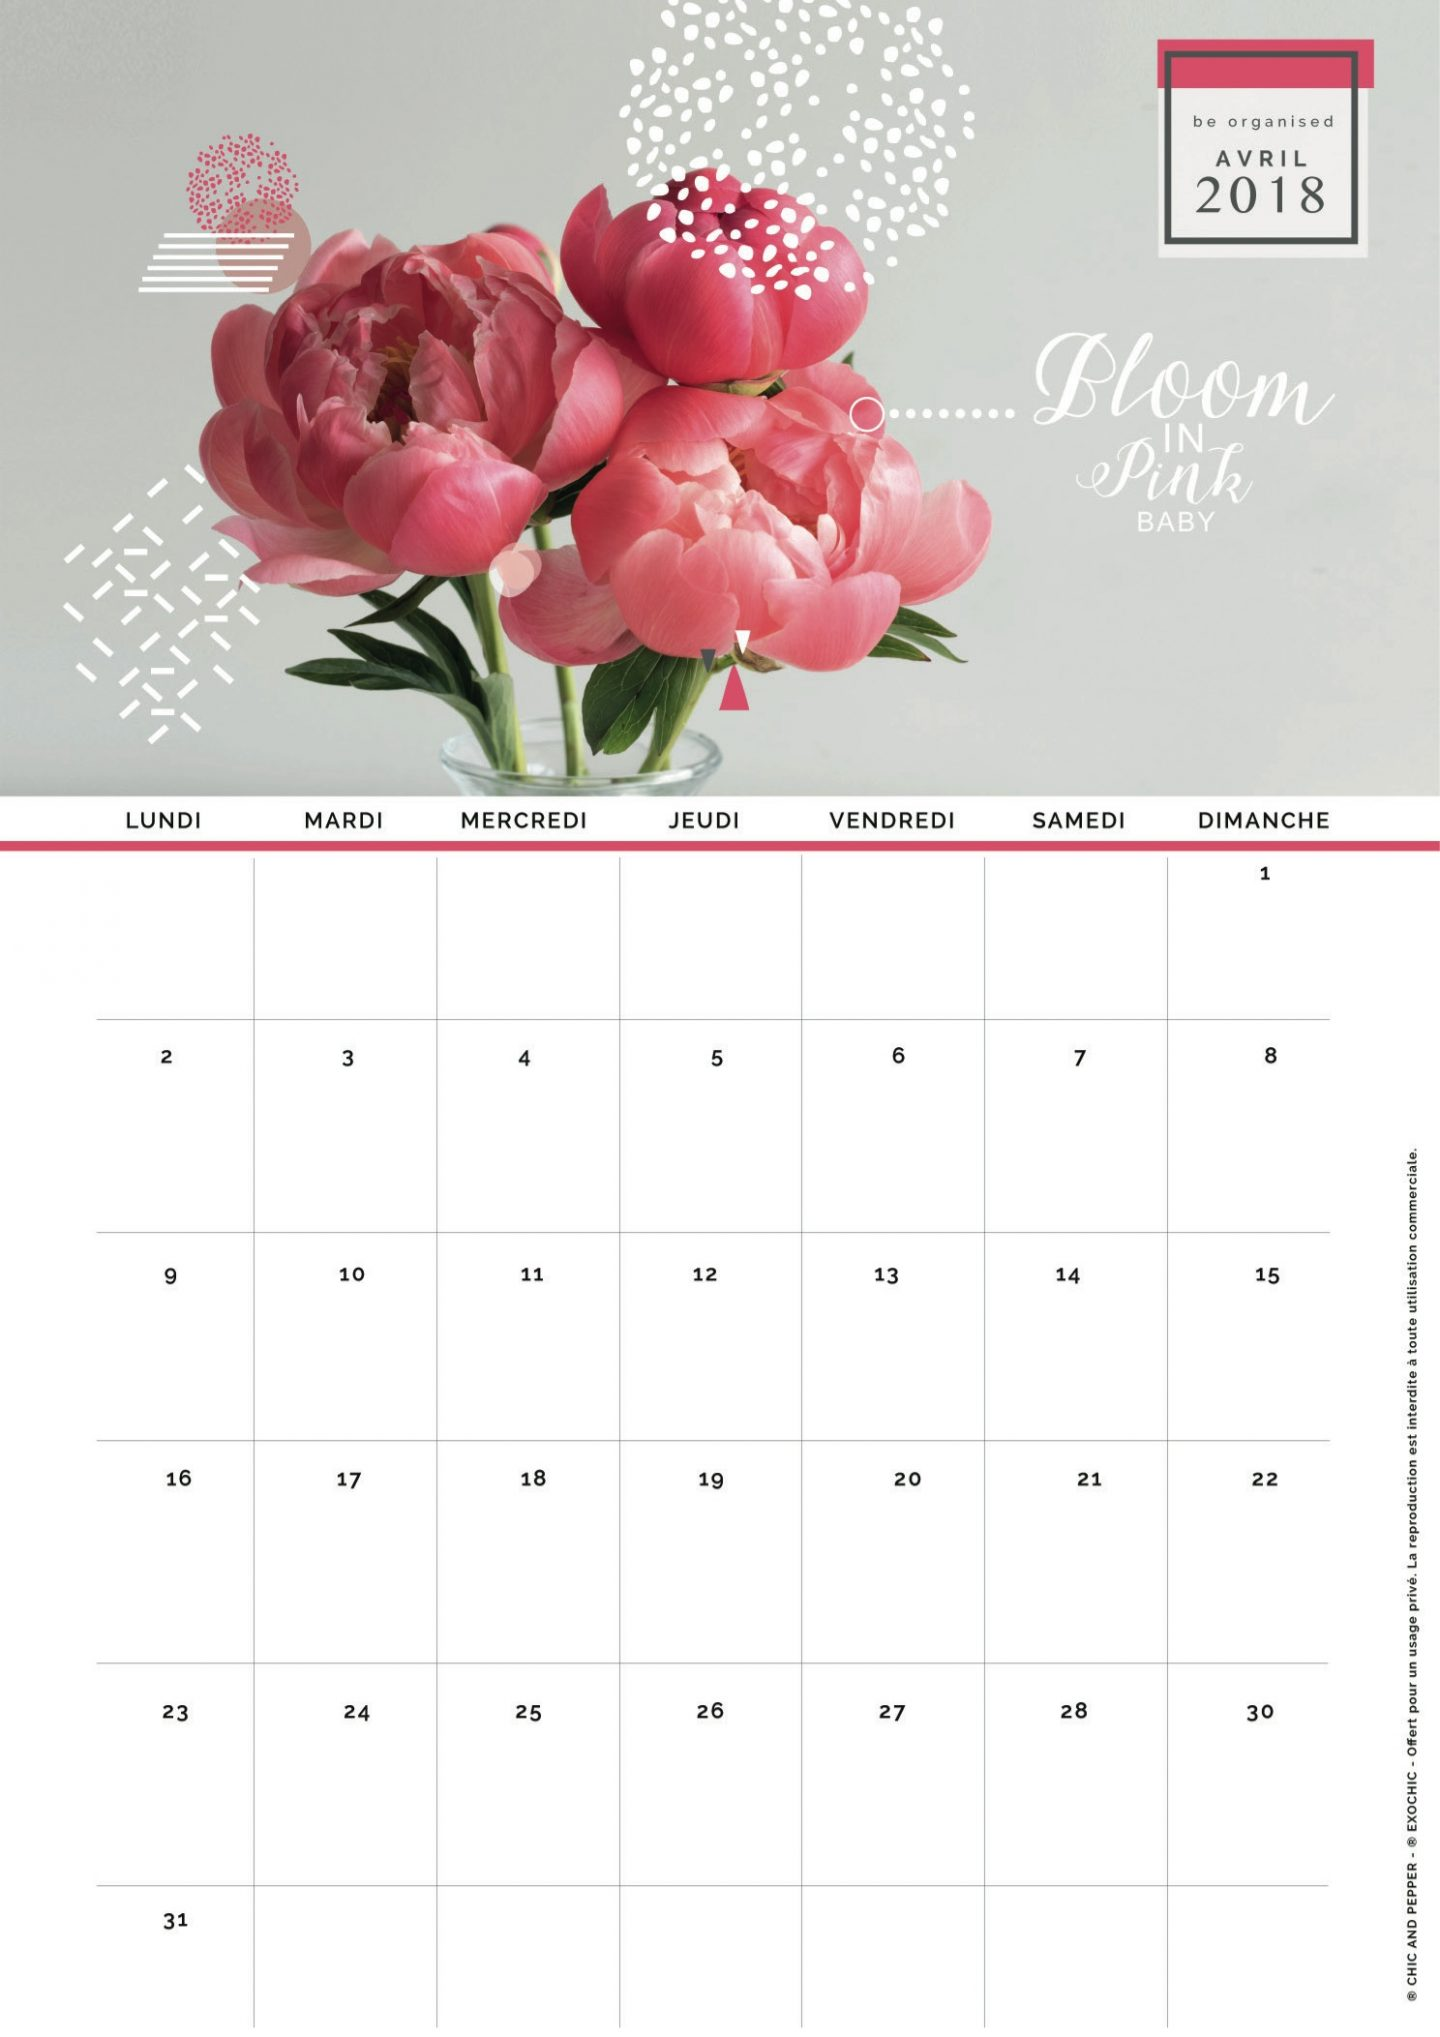 Air Chic Design:disque externe:EXOChic:1 -POSTS:1 - ARTICLES:2018:04- AVRIL:01 CALENDRIER AVRIL 2018:fond ecran Calendrier avril AVRIL 2018 ok .pdf